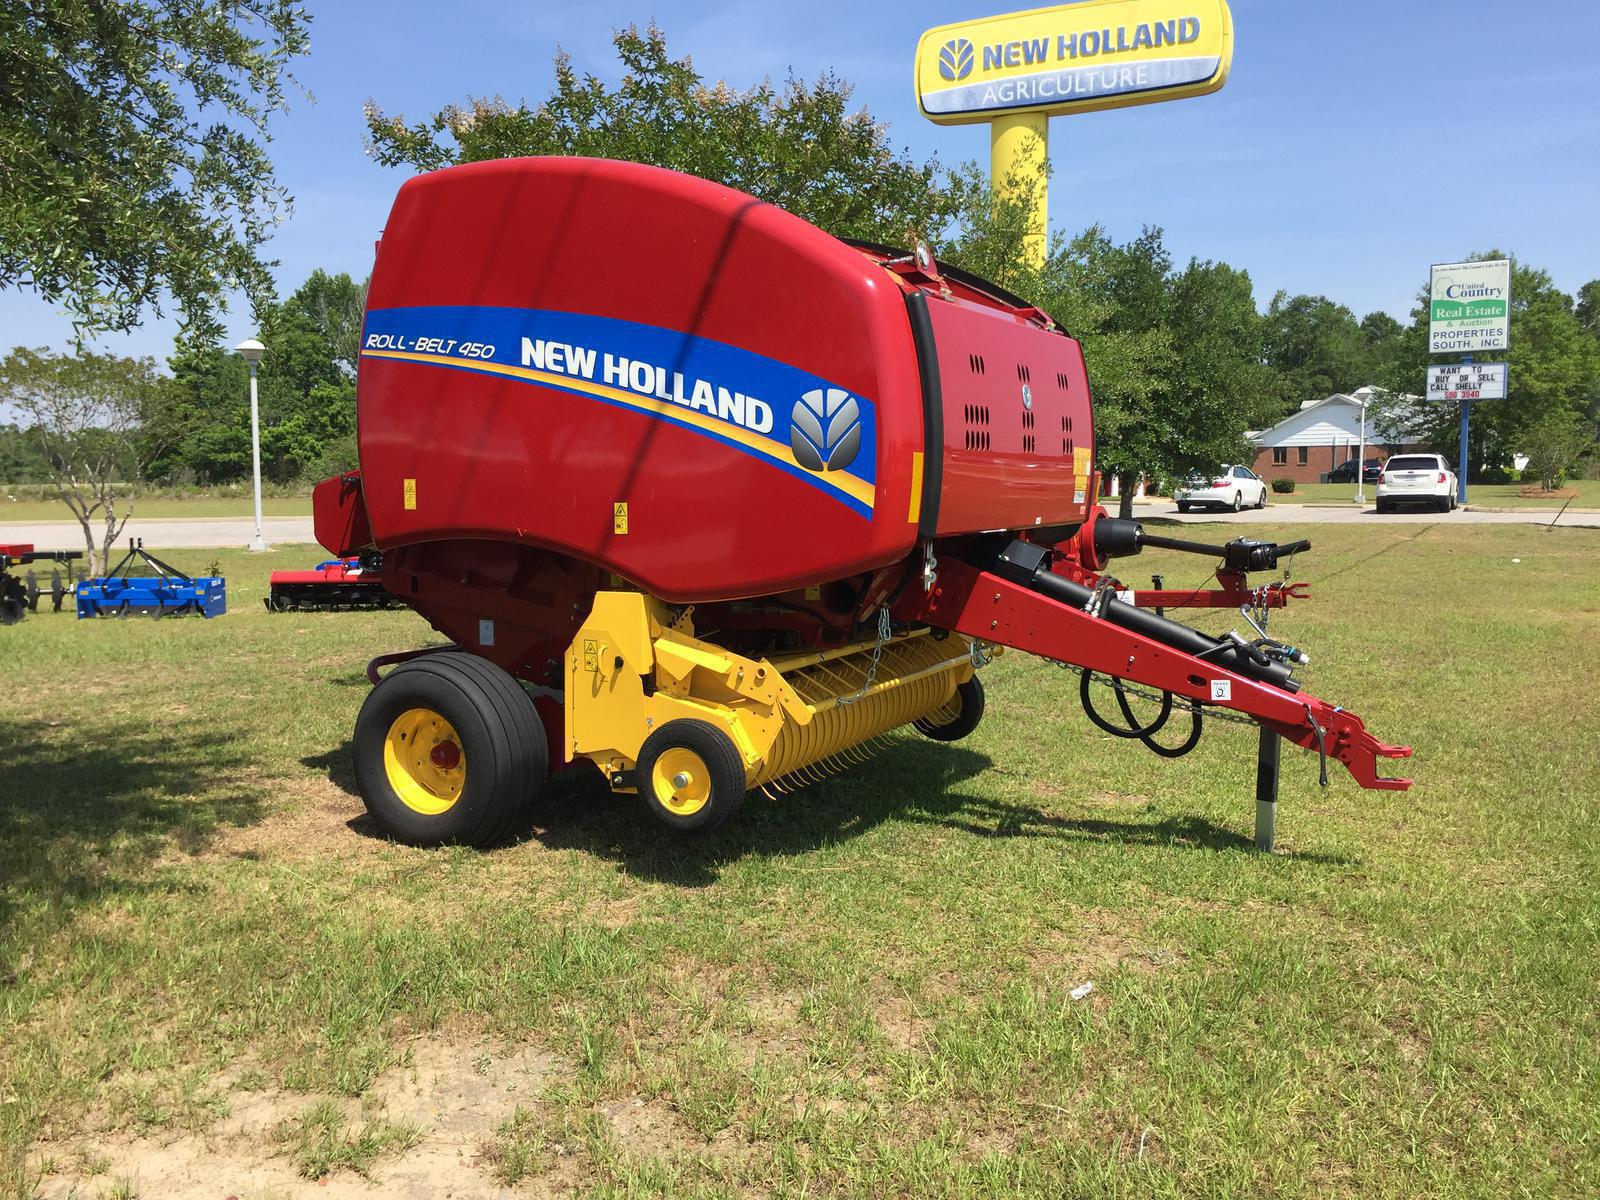 2018 New Holland Agriculture Roll-Belt™ Round Baler Roll-Belt™ 450